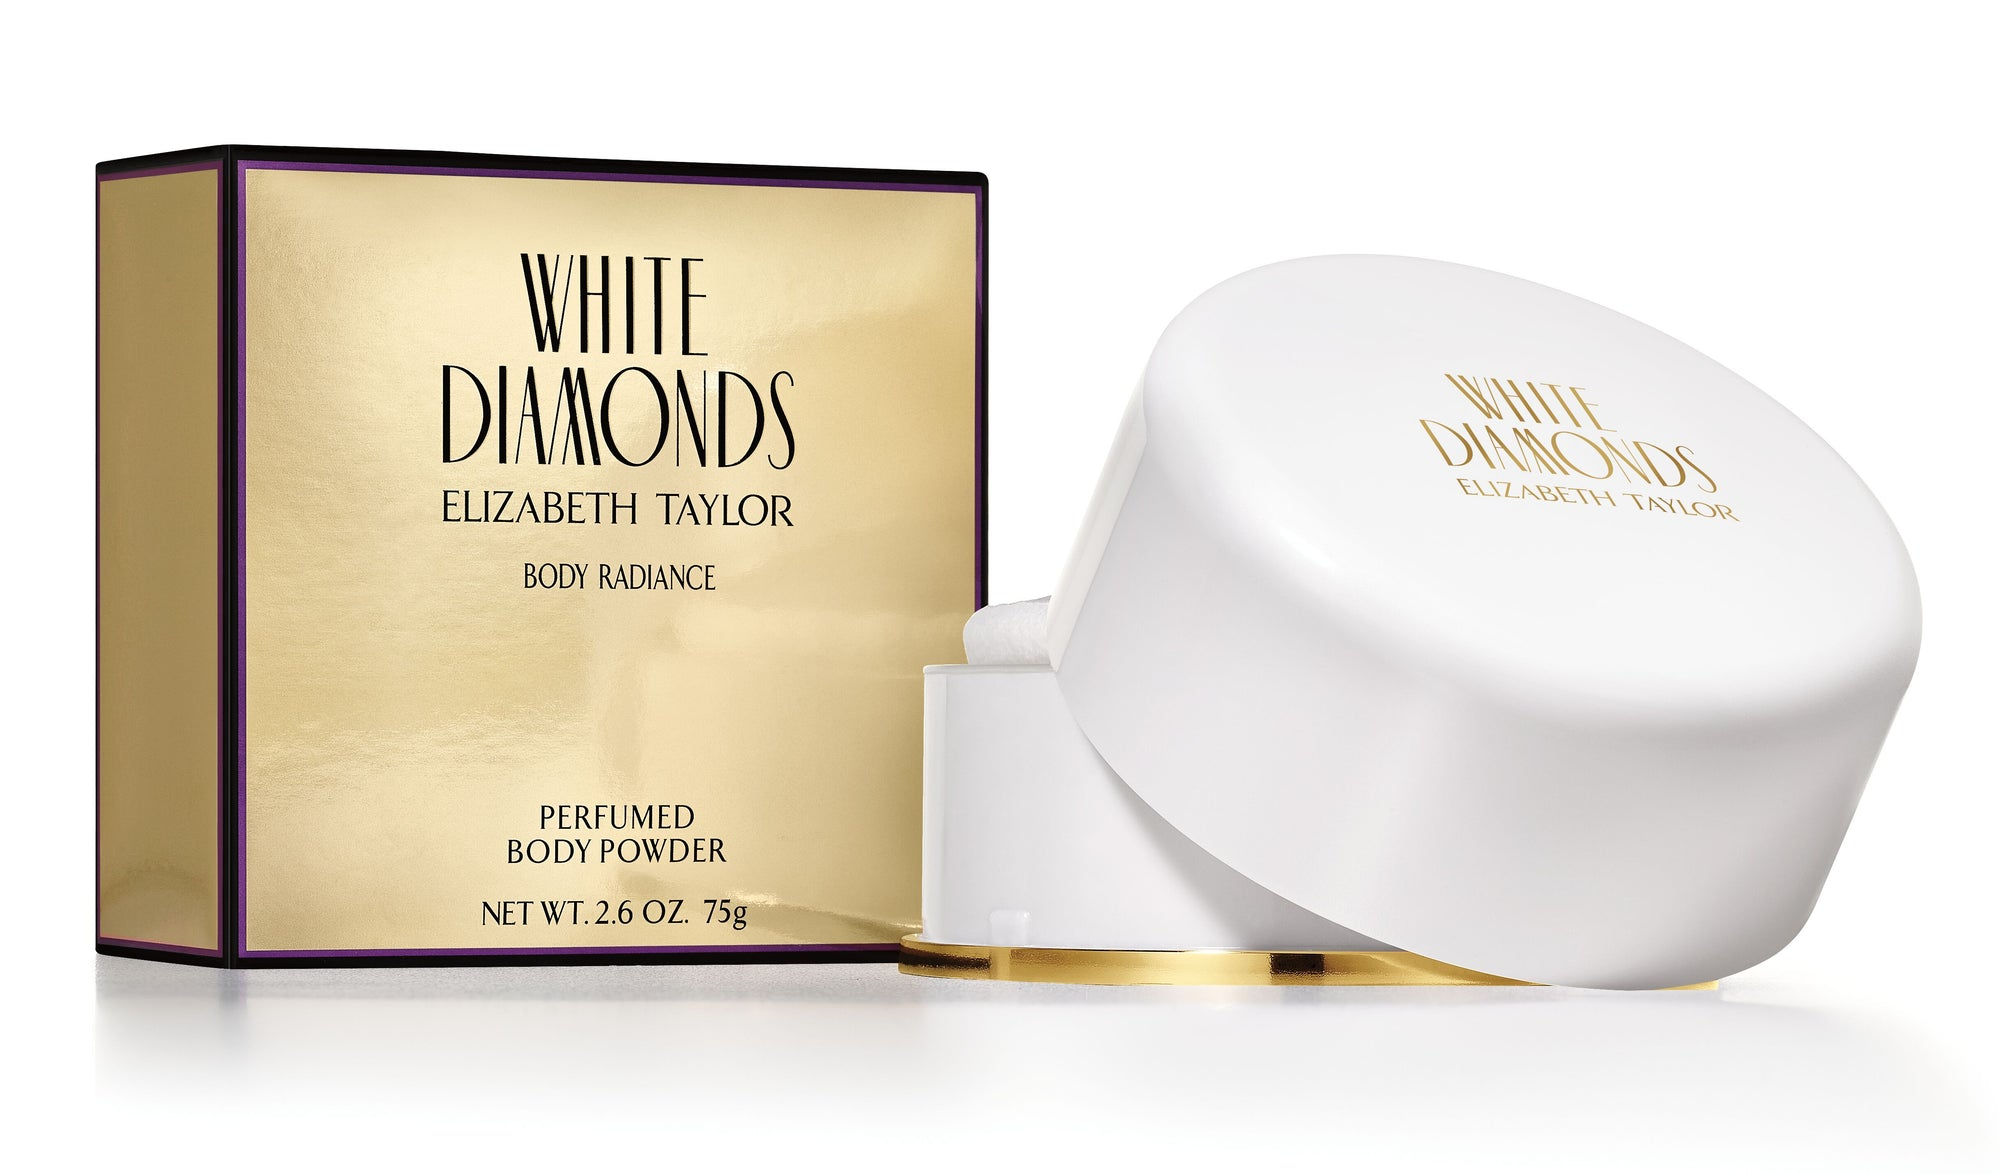 Elizabeth Taylor White Diamonds Body Radiance Perfumed Body Powder 75g